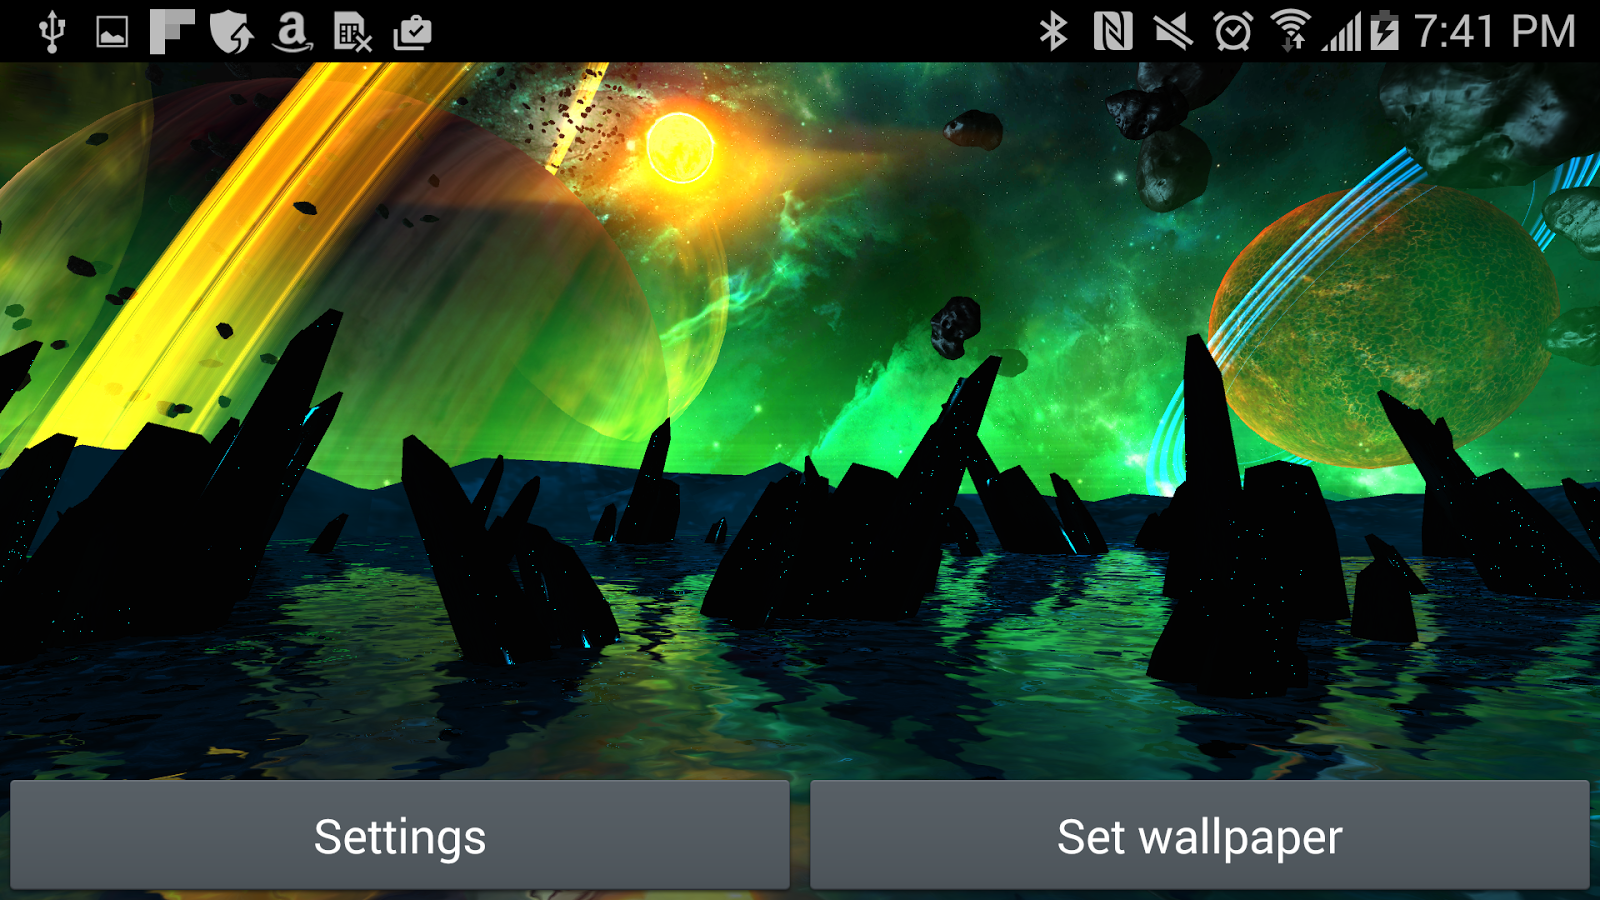 Far Galaxy 3D Live Wallpaper Screenshot 12